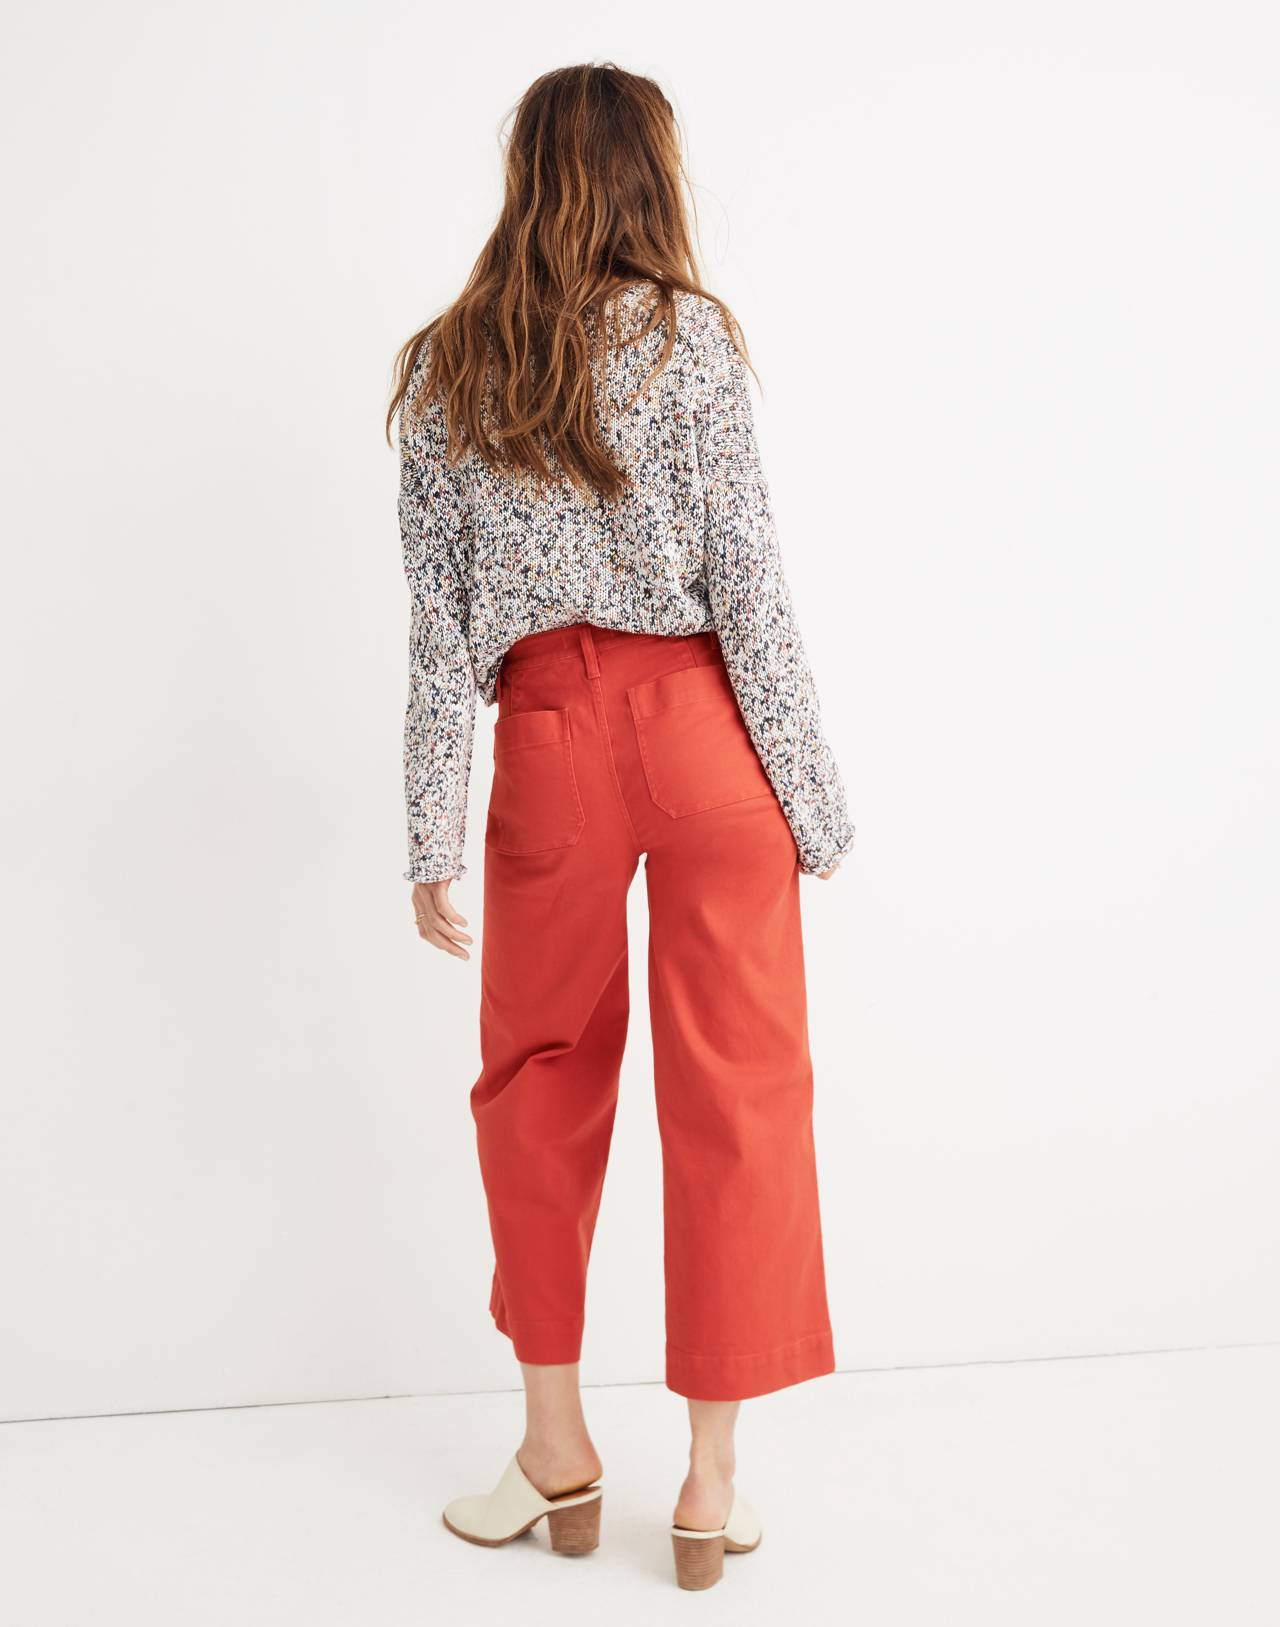 Emmett Wide-Leg Crop Pants in americana red image 3